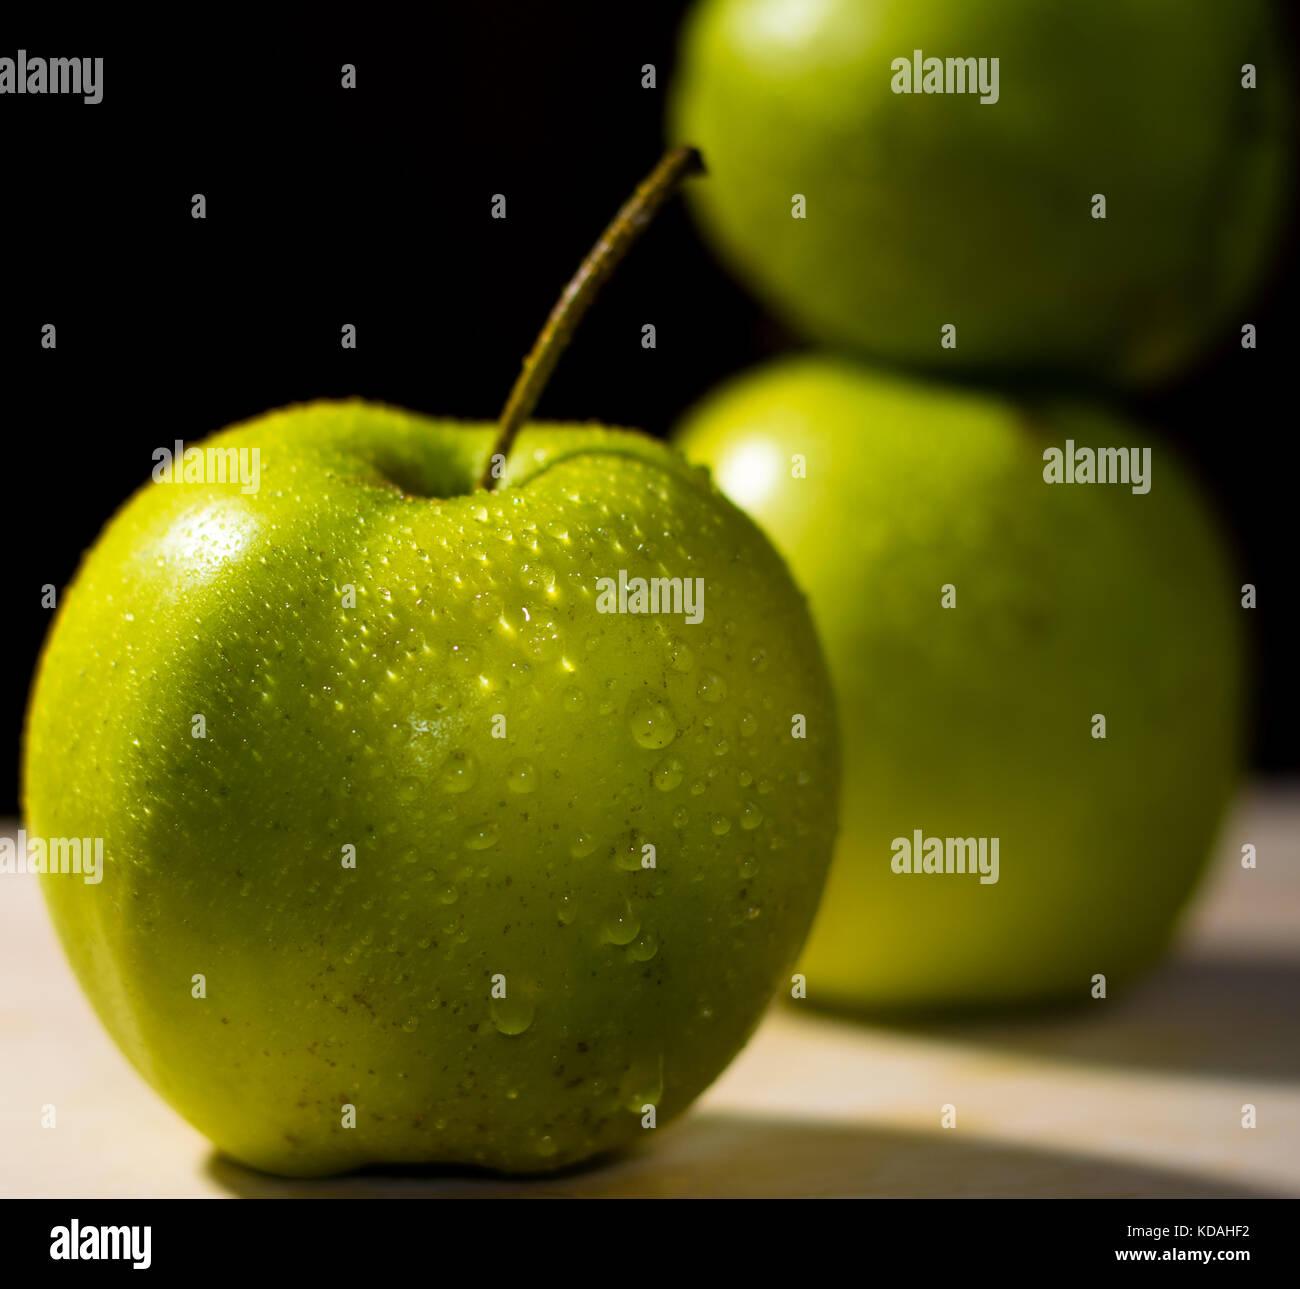 Three green apples, focus on the foreground, dark background - Stock Image